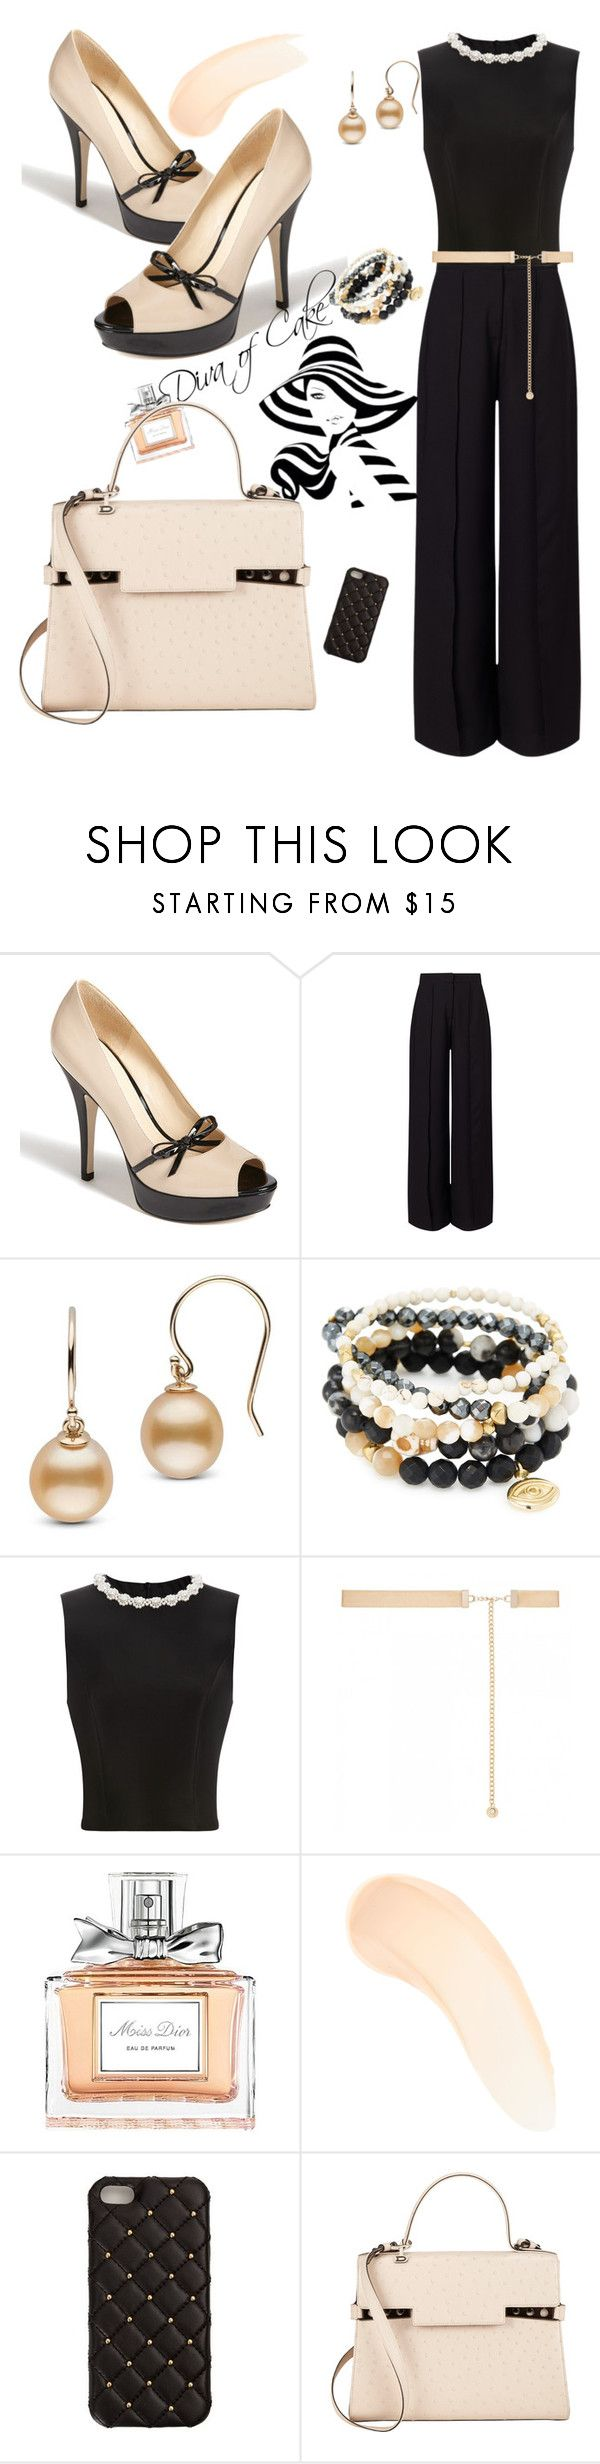 """Sexy outfit black beige and gold"" by Diva of Cake on Polyvore featuring Enzo Angiolini, Miss Selfridge, Good Charma, Simone Rocha, Forever New, Christian Dior, Zelens, 2Me Style and Delvaux"